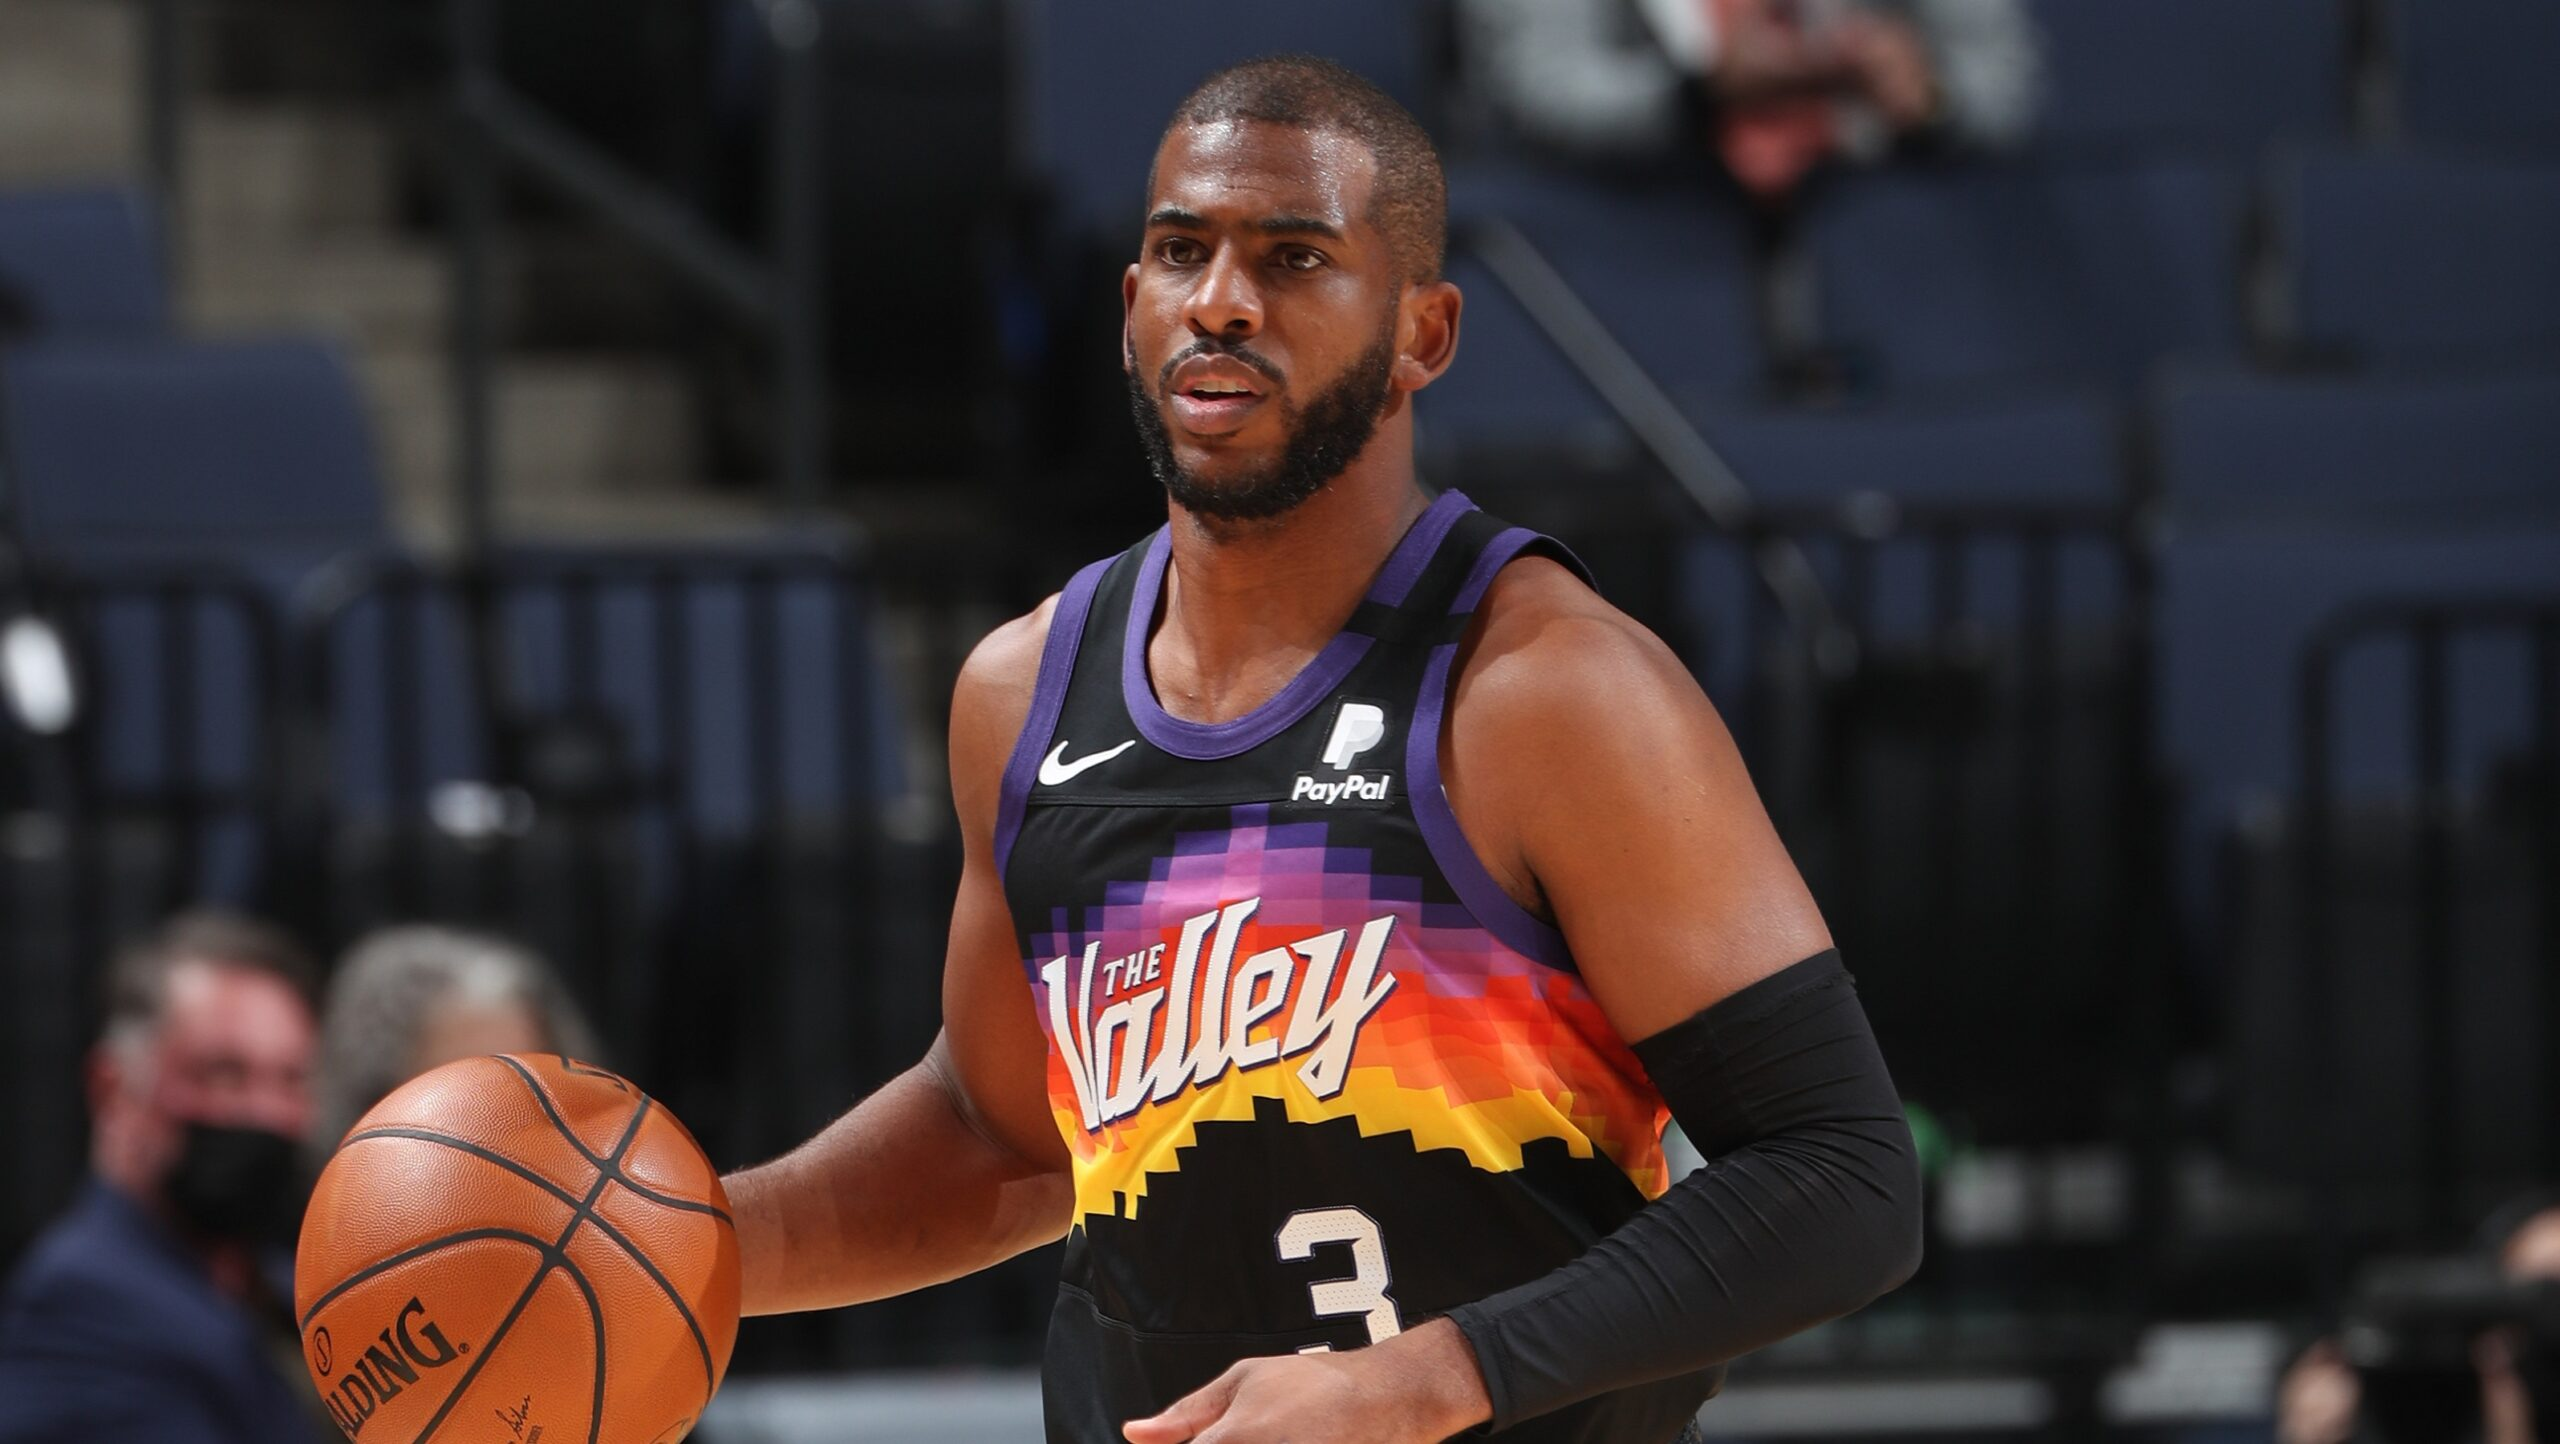 Chris Paul surpasses Oscar Robertson for 6th in career assists